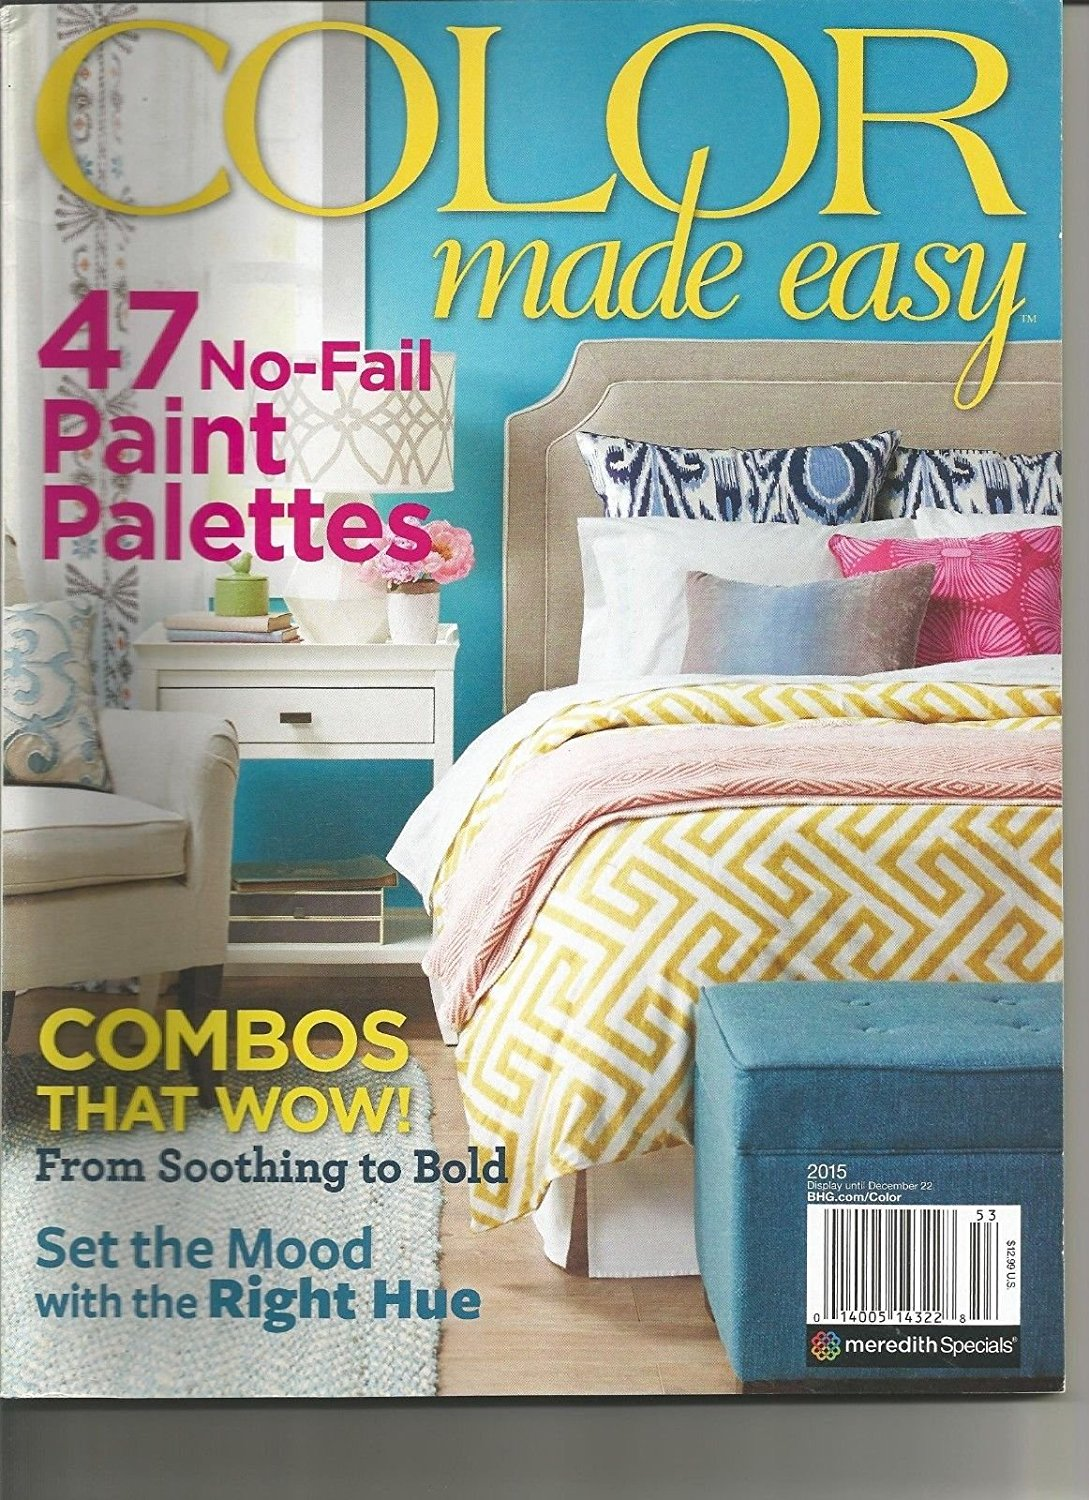 COLOR MADE EASY MAGAZINE, ISSUE 2015, (47 NO-FAIL PAINT PALETTES) ~